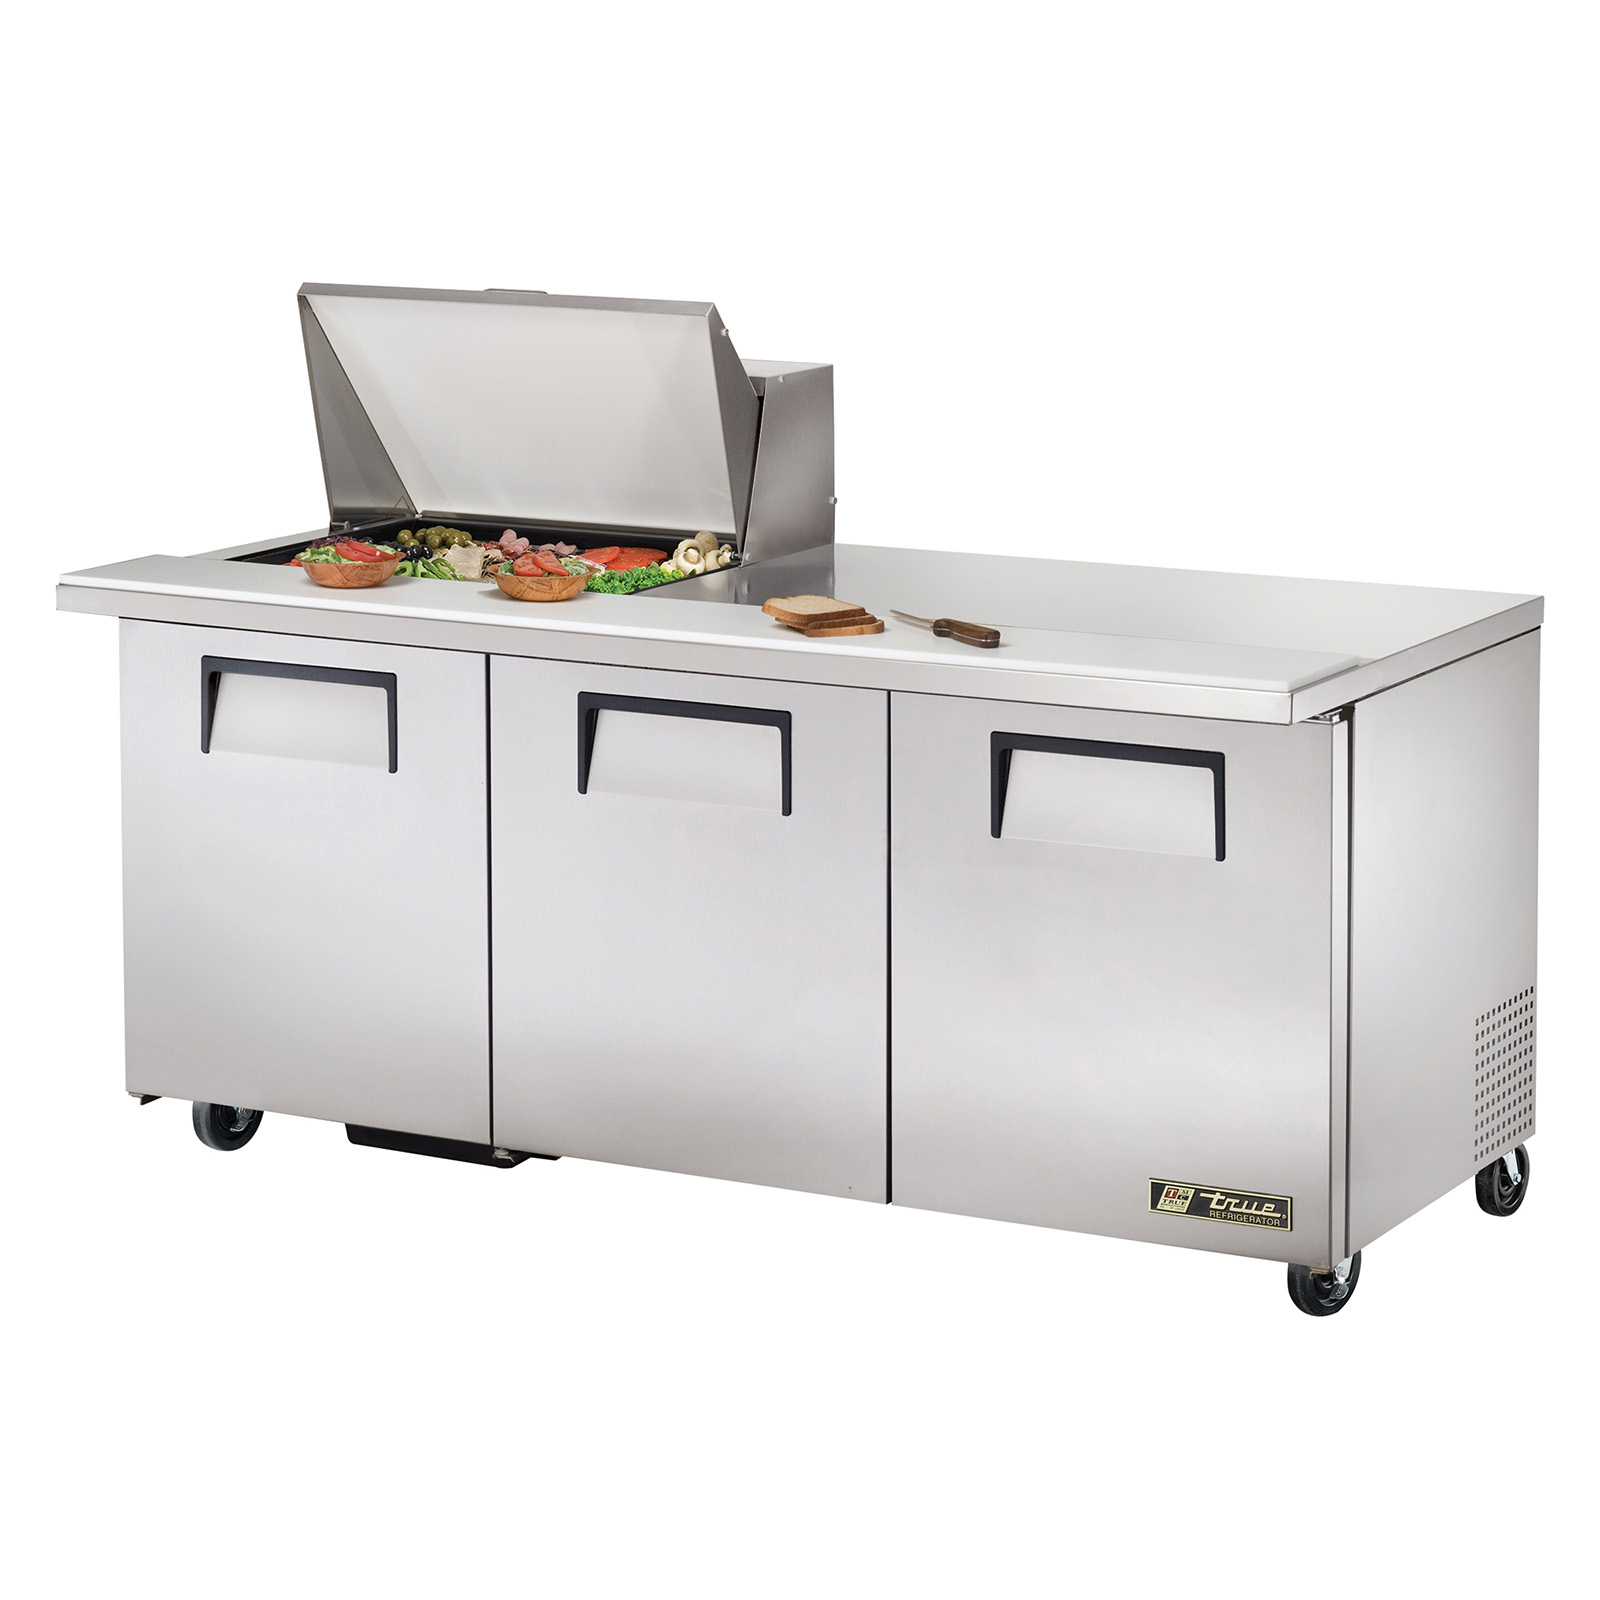 TSSU-72-12M-B True - Mega Top Sandwich/Salad Unit (12) 1/6 size (4